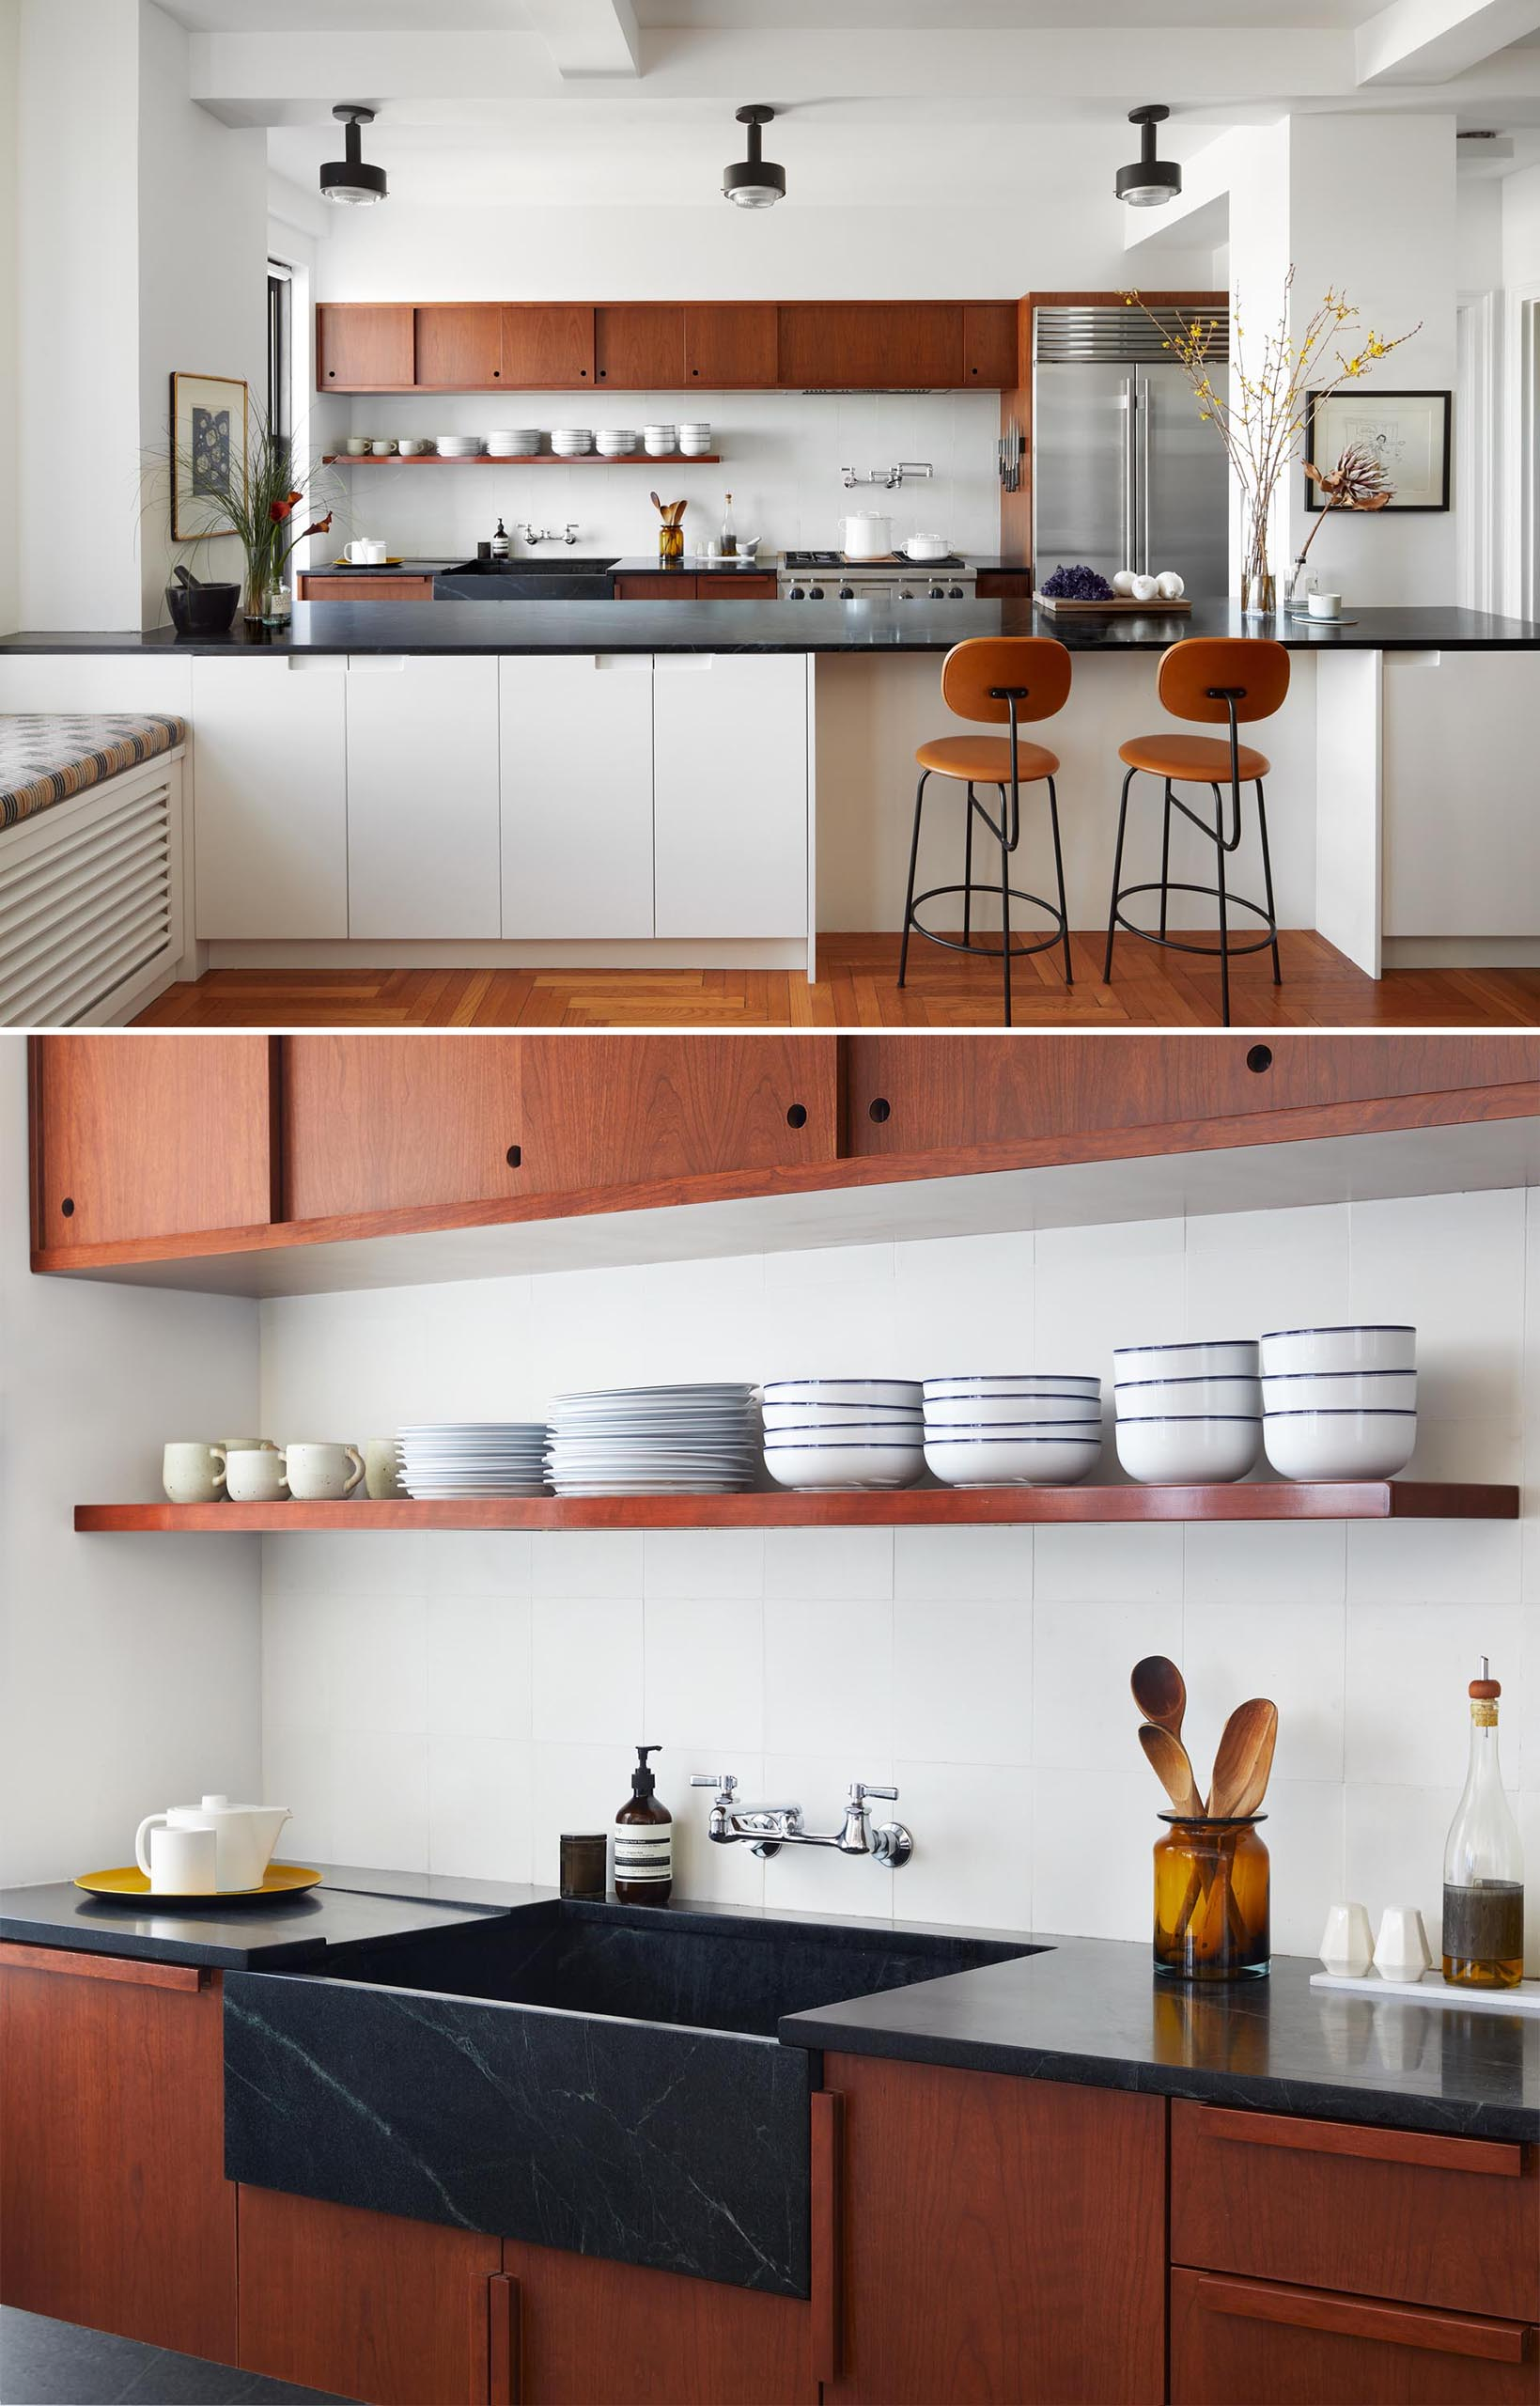 A remodeled kitchen with custom auburn cherry cabinetry inspired by mid-century Southern California woodwork, and has integrated handles and sliding doors, and a black soapstone countertop.